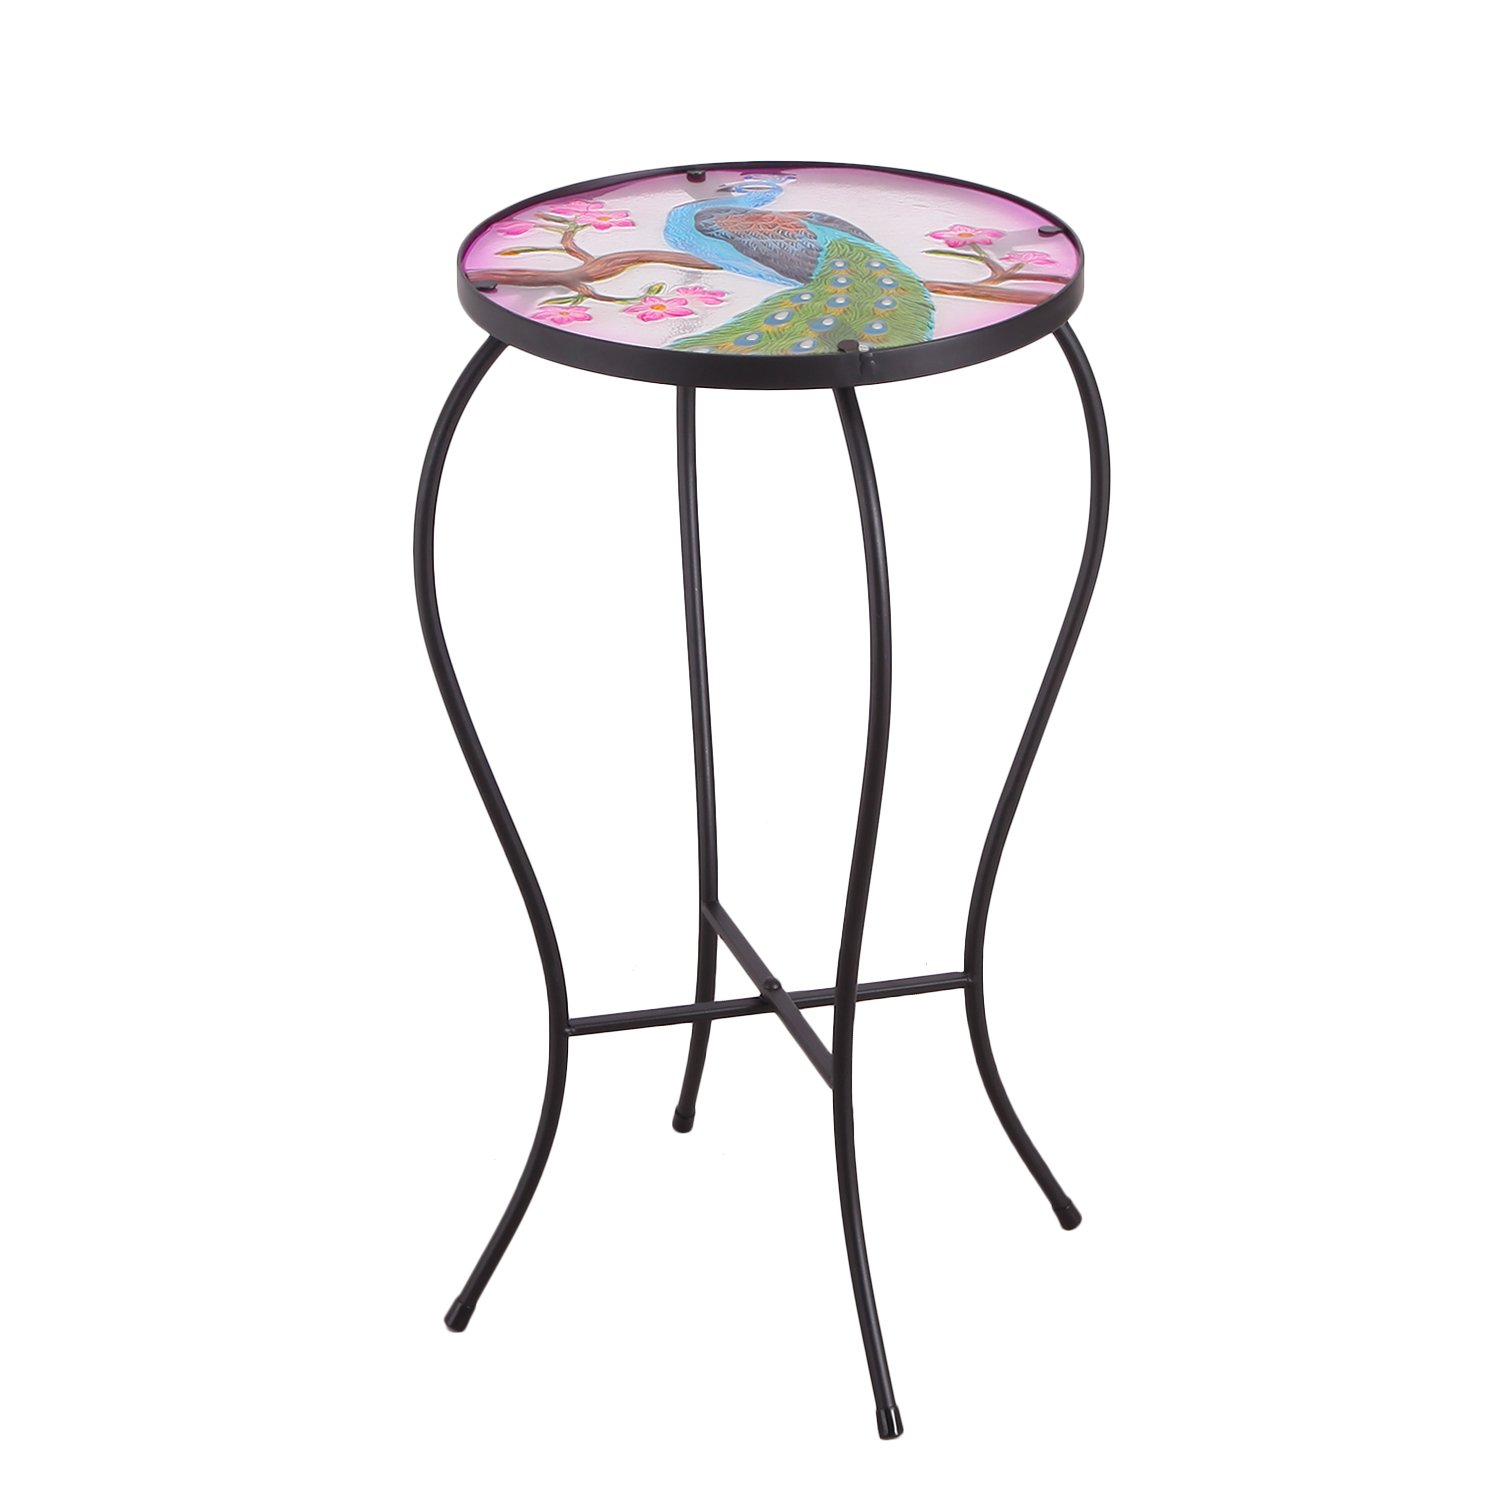 Joveco Hand Painted Style Multicolor Artscape Accent Glass Top Round Side Table Plant Stand - Peacock